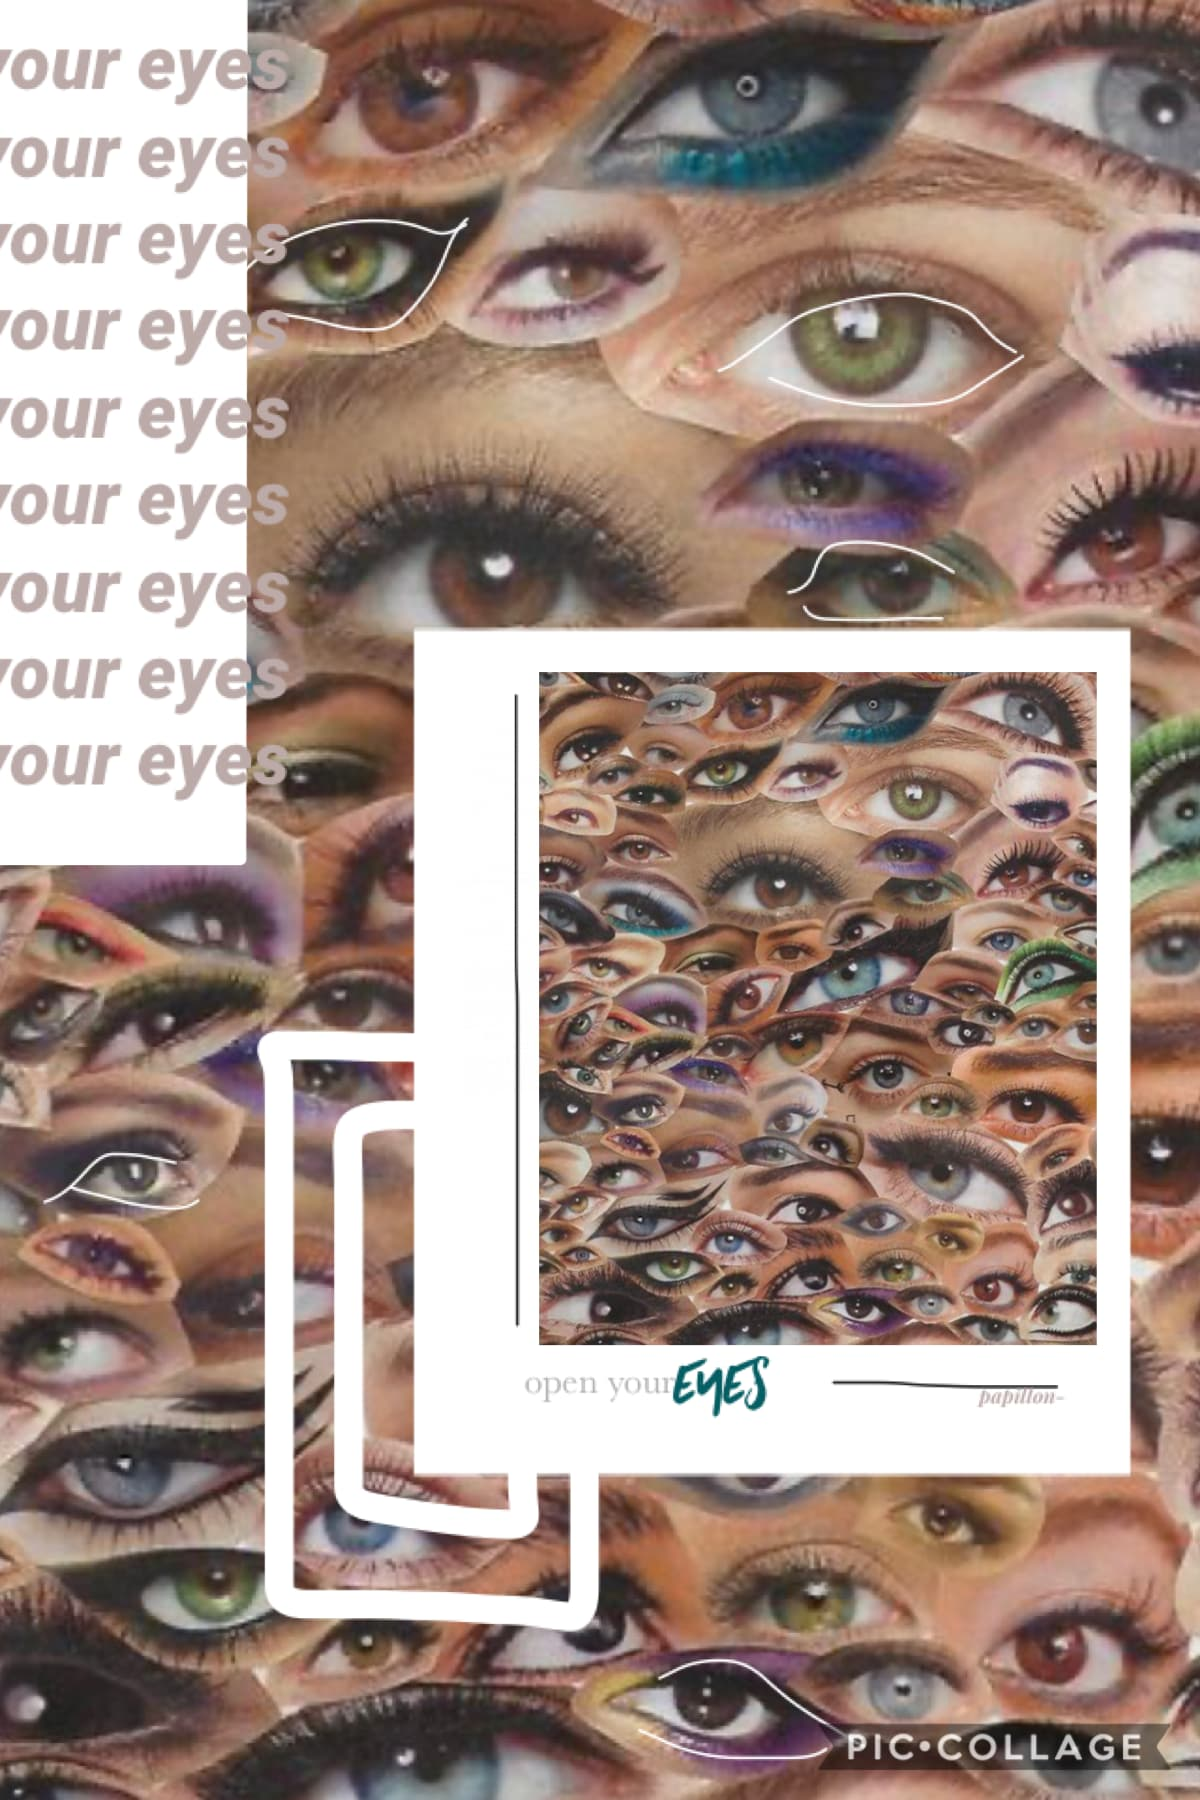 OPEN YOUR EYES hi friends! i don't think anyone is active on my account anymore lol. i disappeared for like 6 months!! i'm back, at least for now! (eye collage is from etsy)